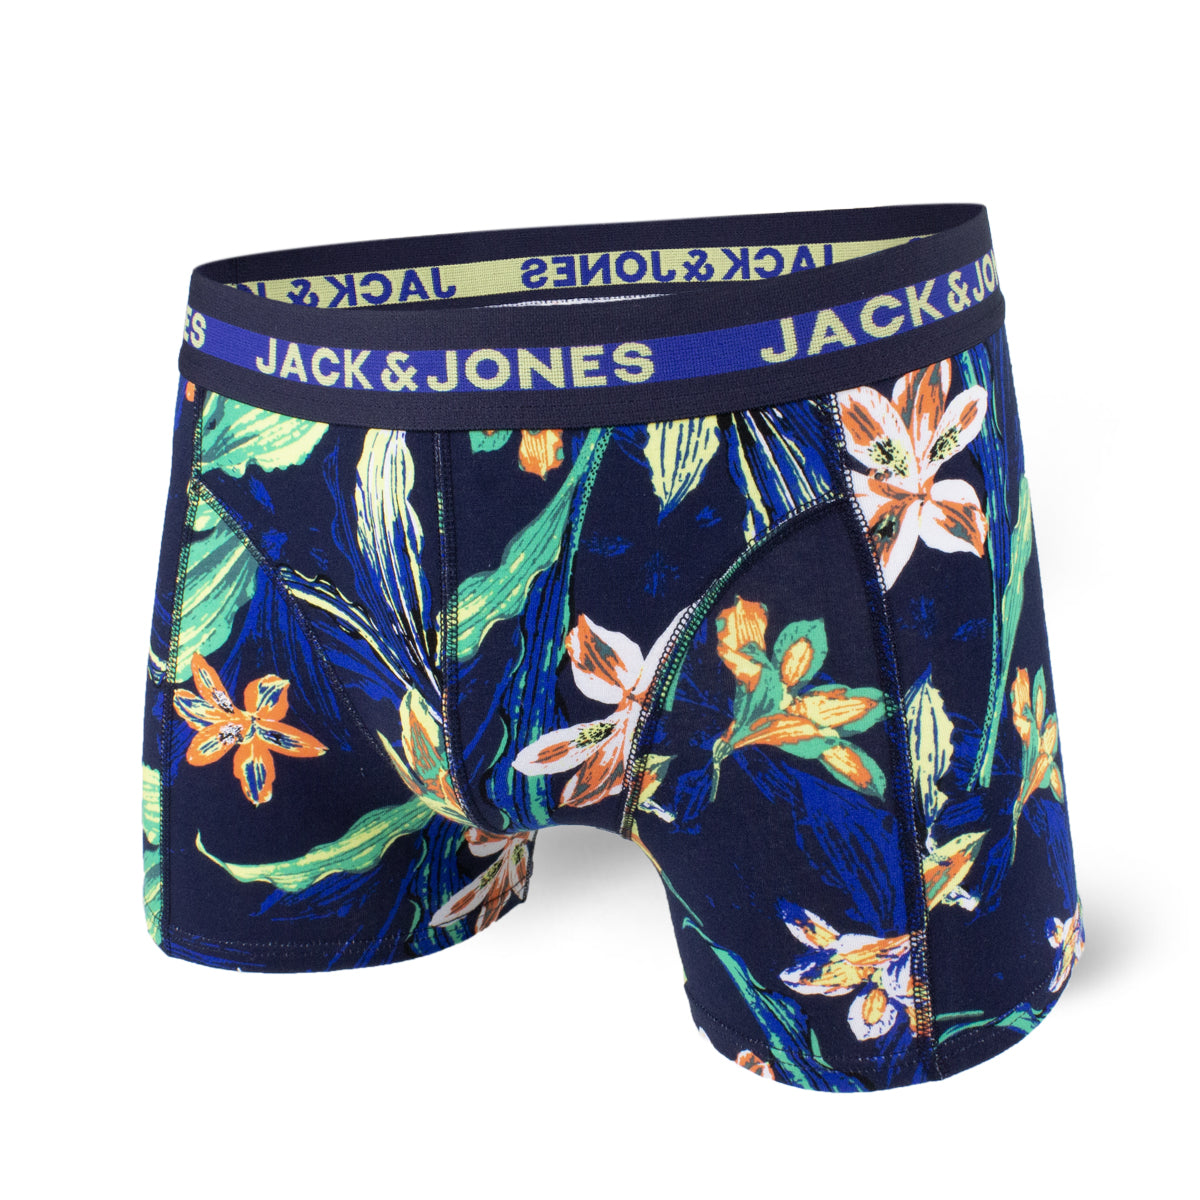 Boxer court Jack & Jones Tropical Navy Blue print